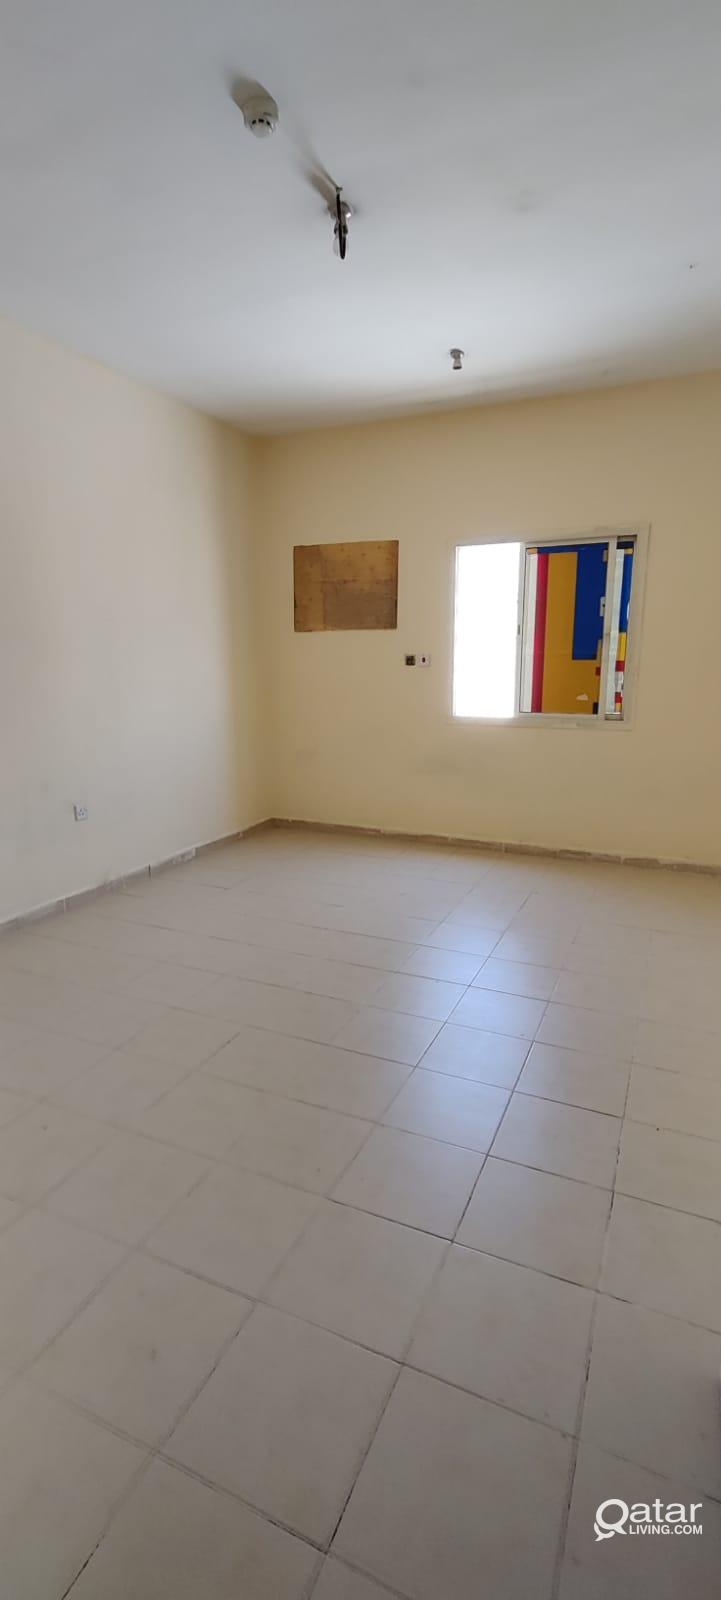 33 Room For Rent - Independent Labor Camp